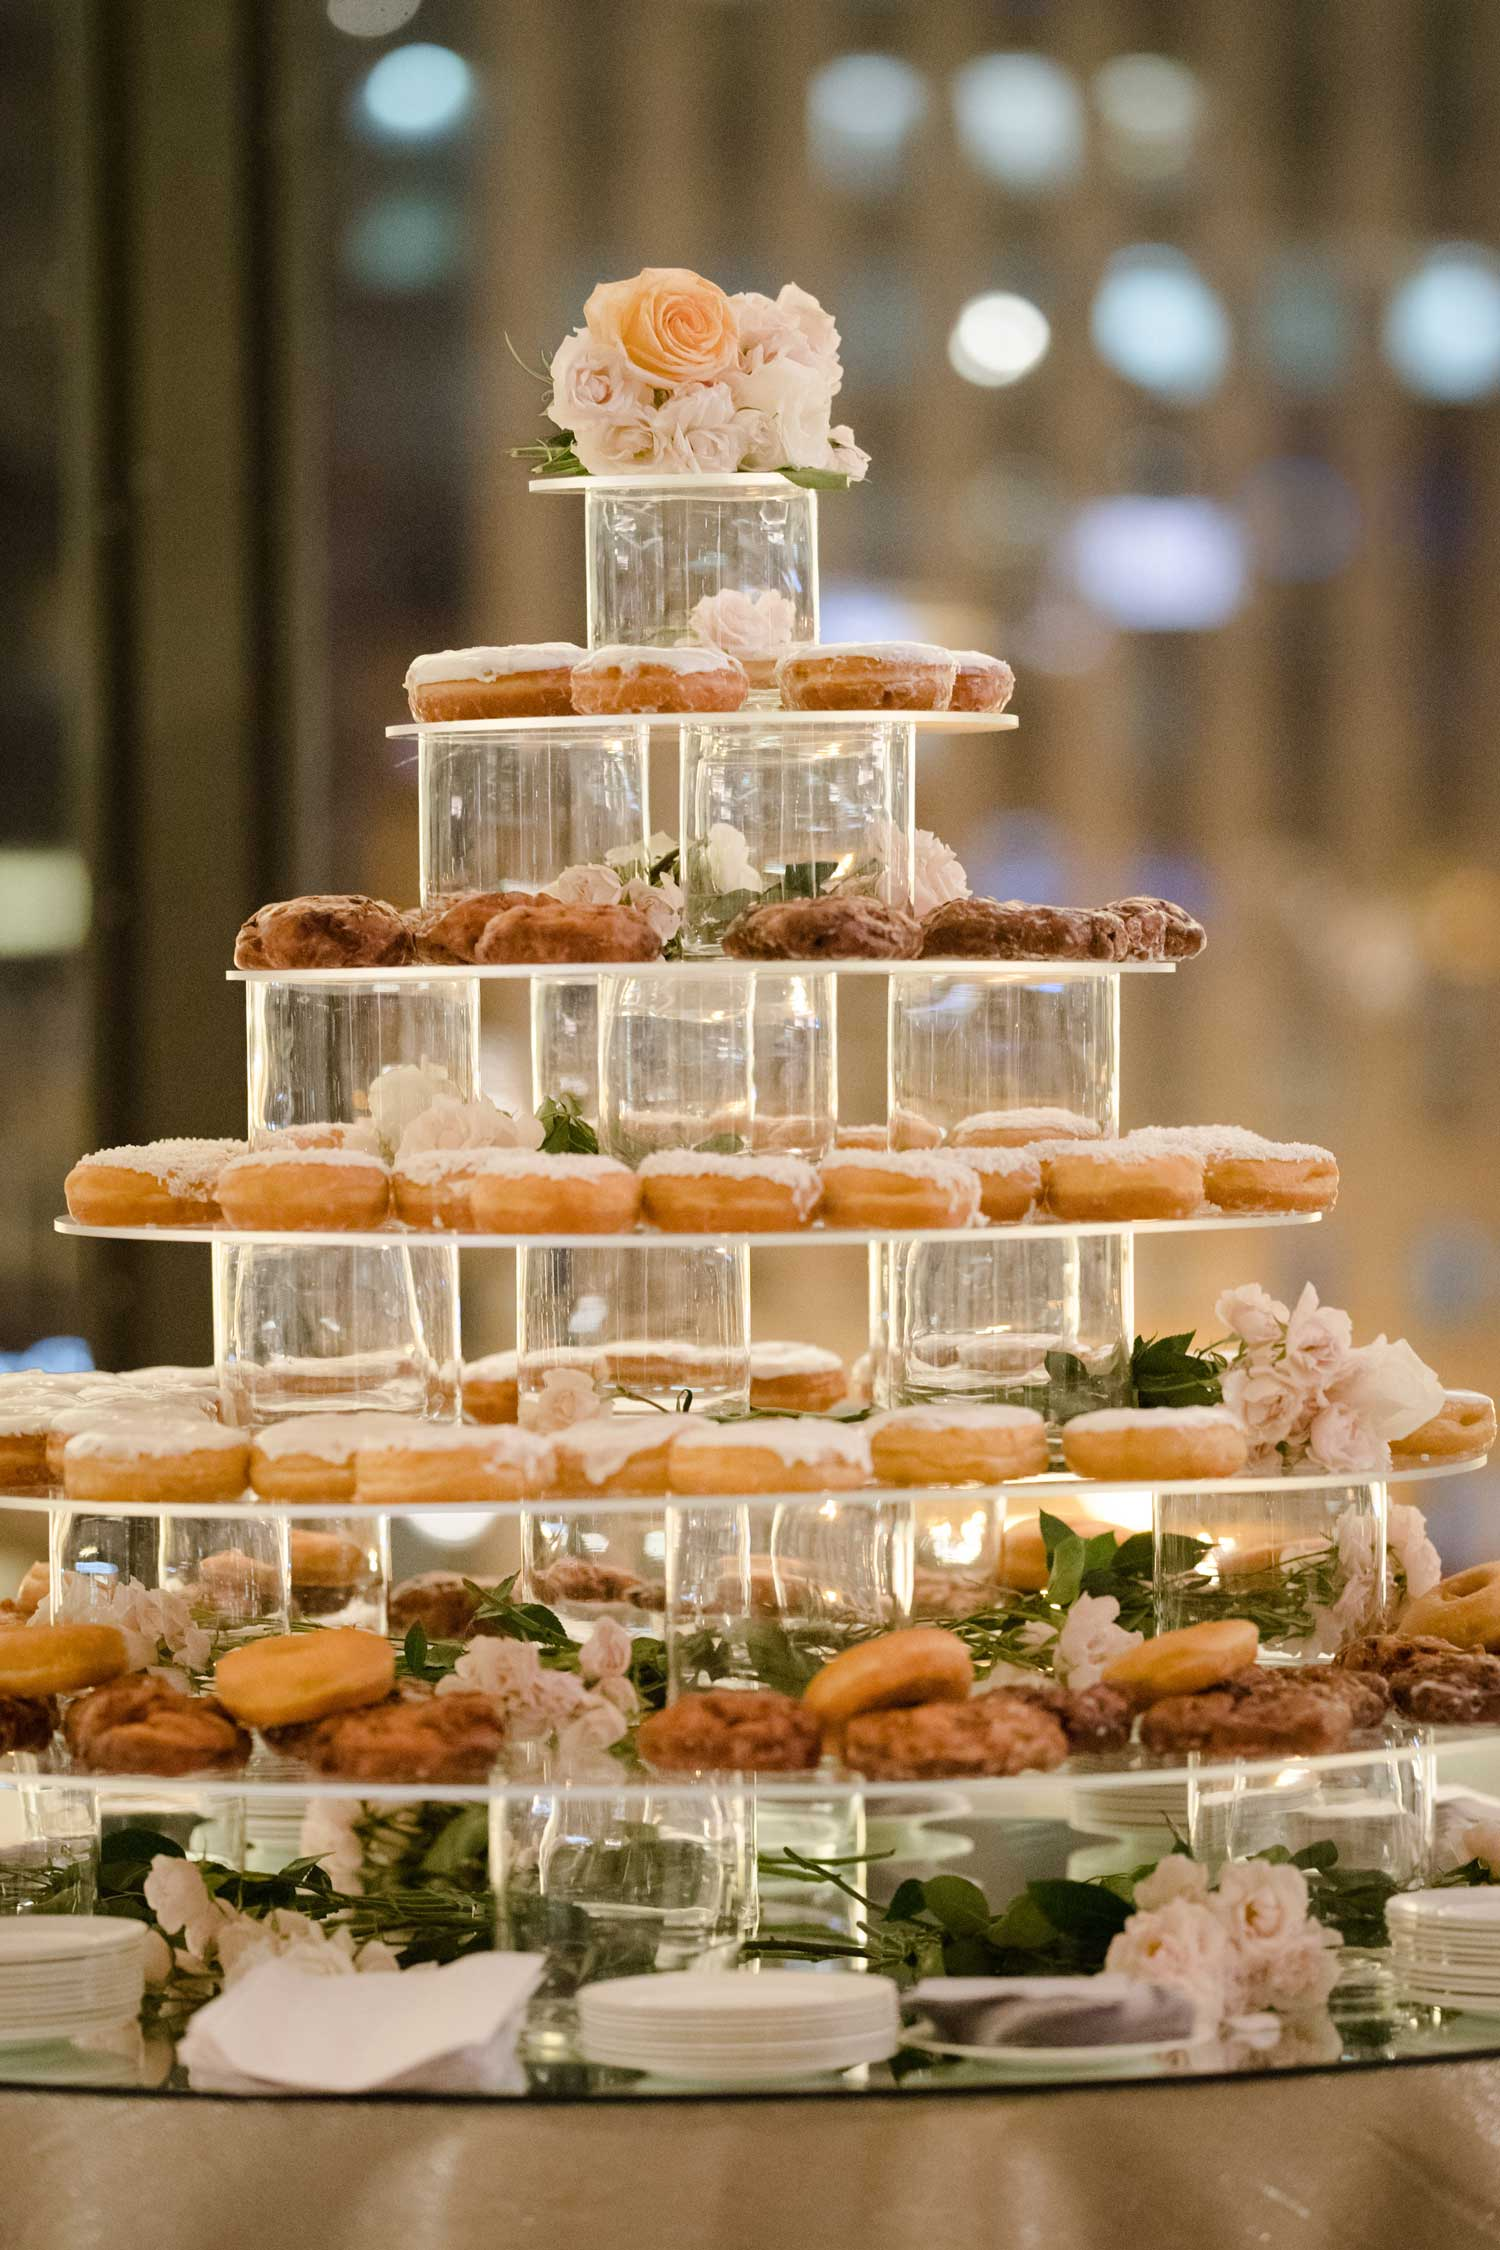 Acrylic tower of donuts doughnuts at wedding reception dessert table